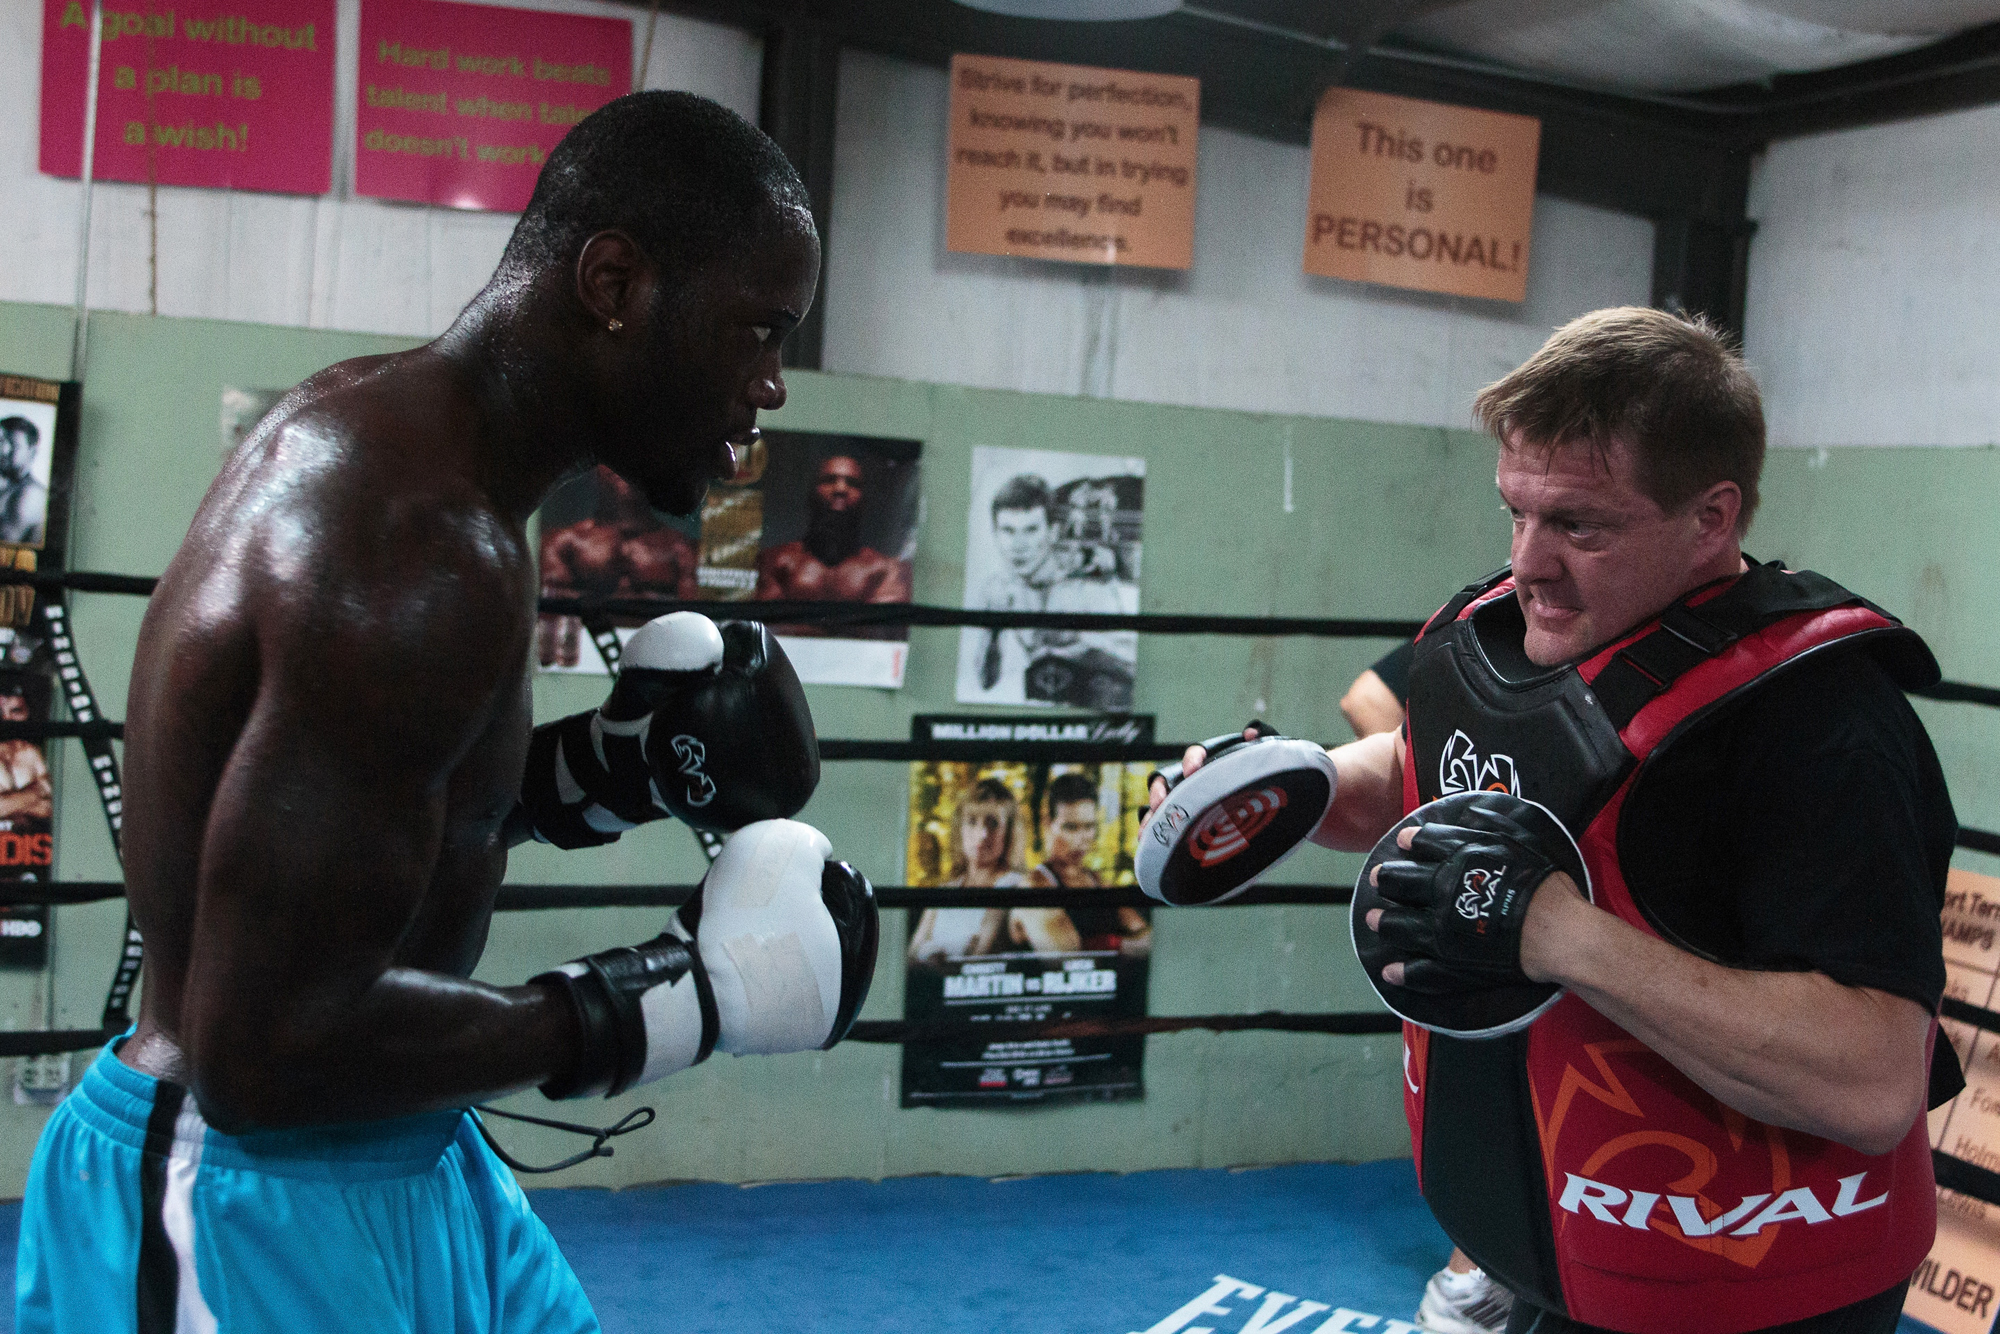 WBC Heavyweight Champion Deontay Wilder works with trainer Jay Deas during his media workout on May 28, 2015 in Northport, Alabama.